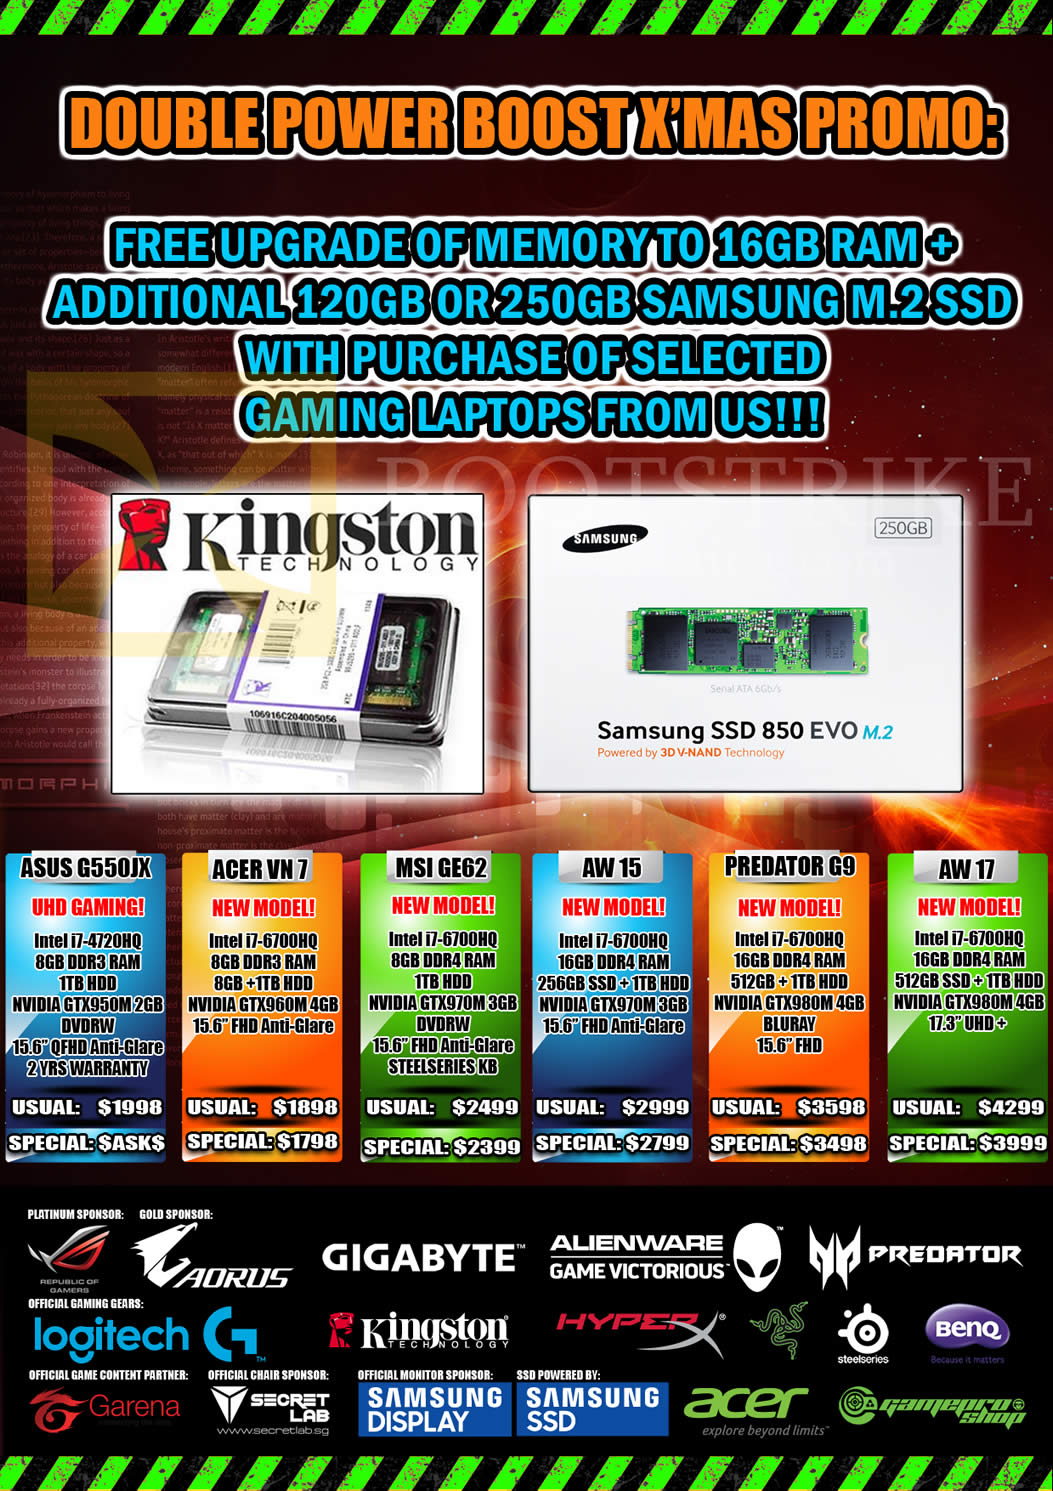 SITEX 2015 price list image brochure of Gamepro Notebooks Asus G550jx, Acer VN7, MSI GE62, AW15, Predator G9, AW17